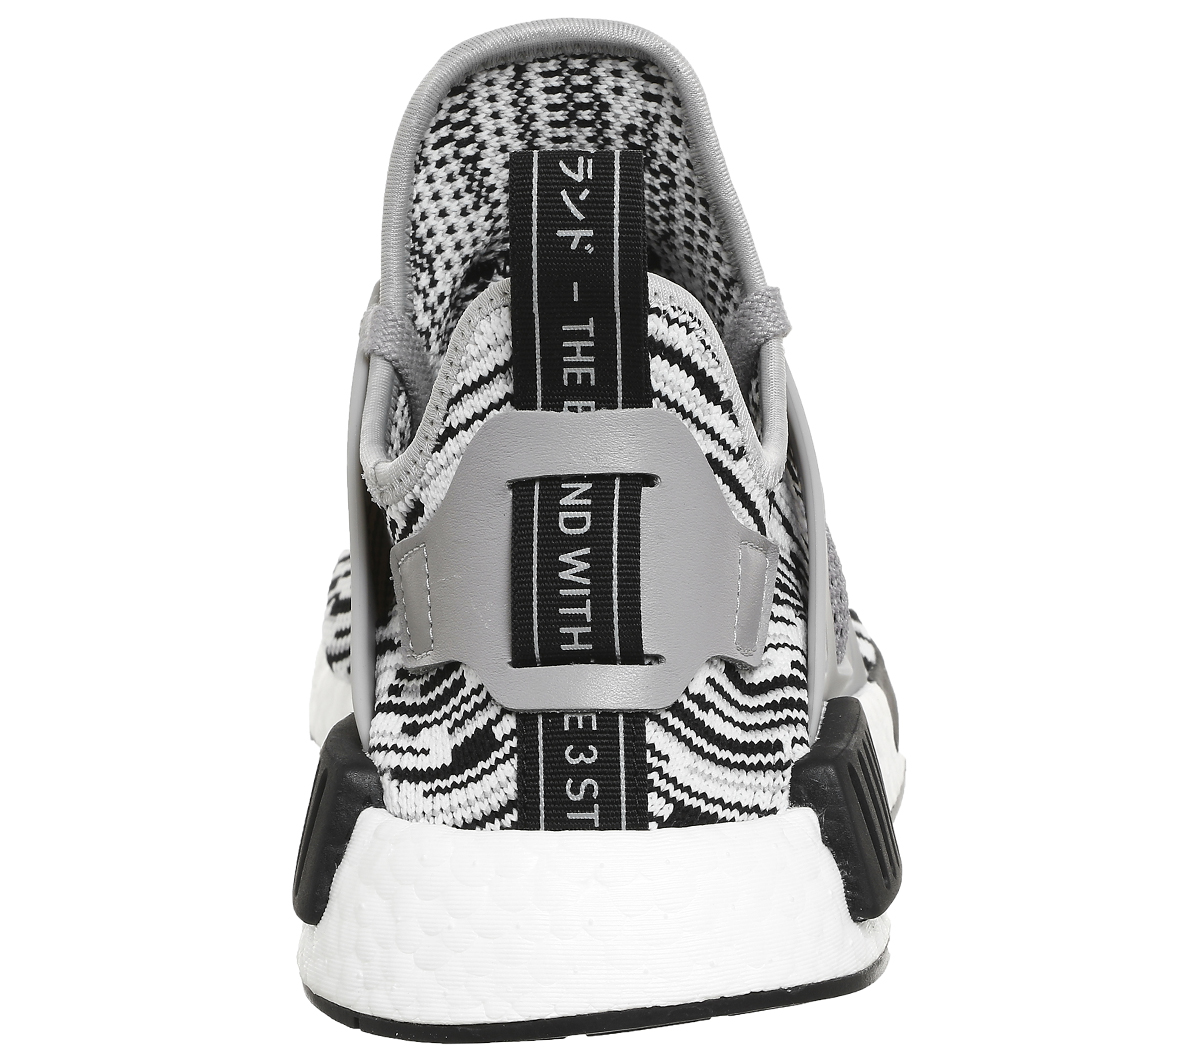 super cheap ba84c 5eeb2 Details about Adidas Nmd Xr1 BLACK SOLID GREY WHITE PK Trainers Shoes